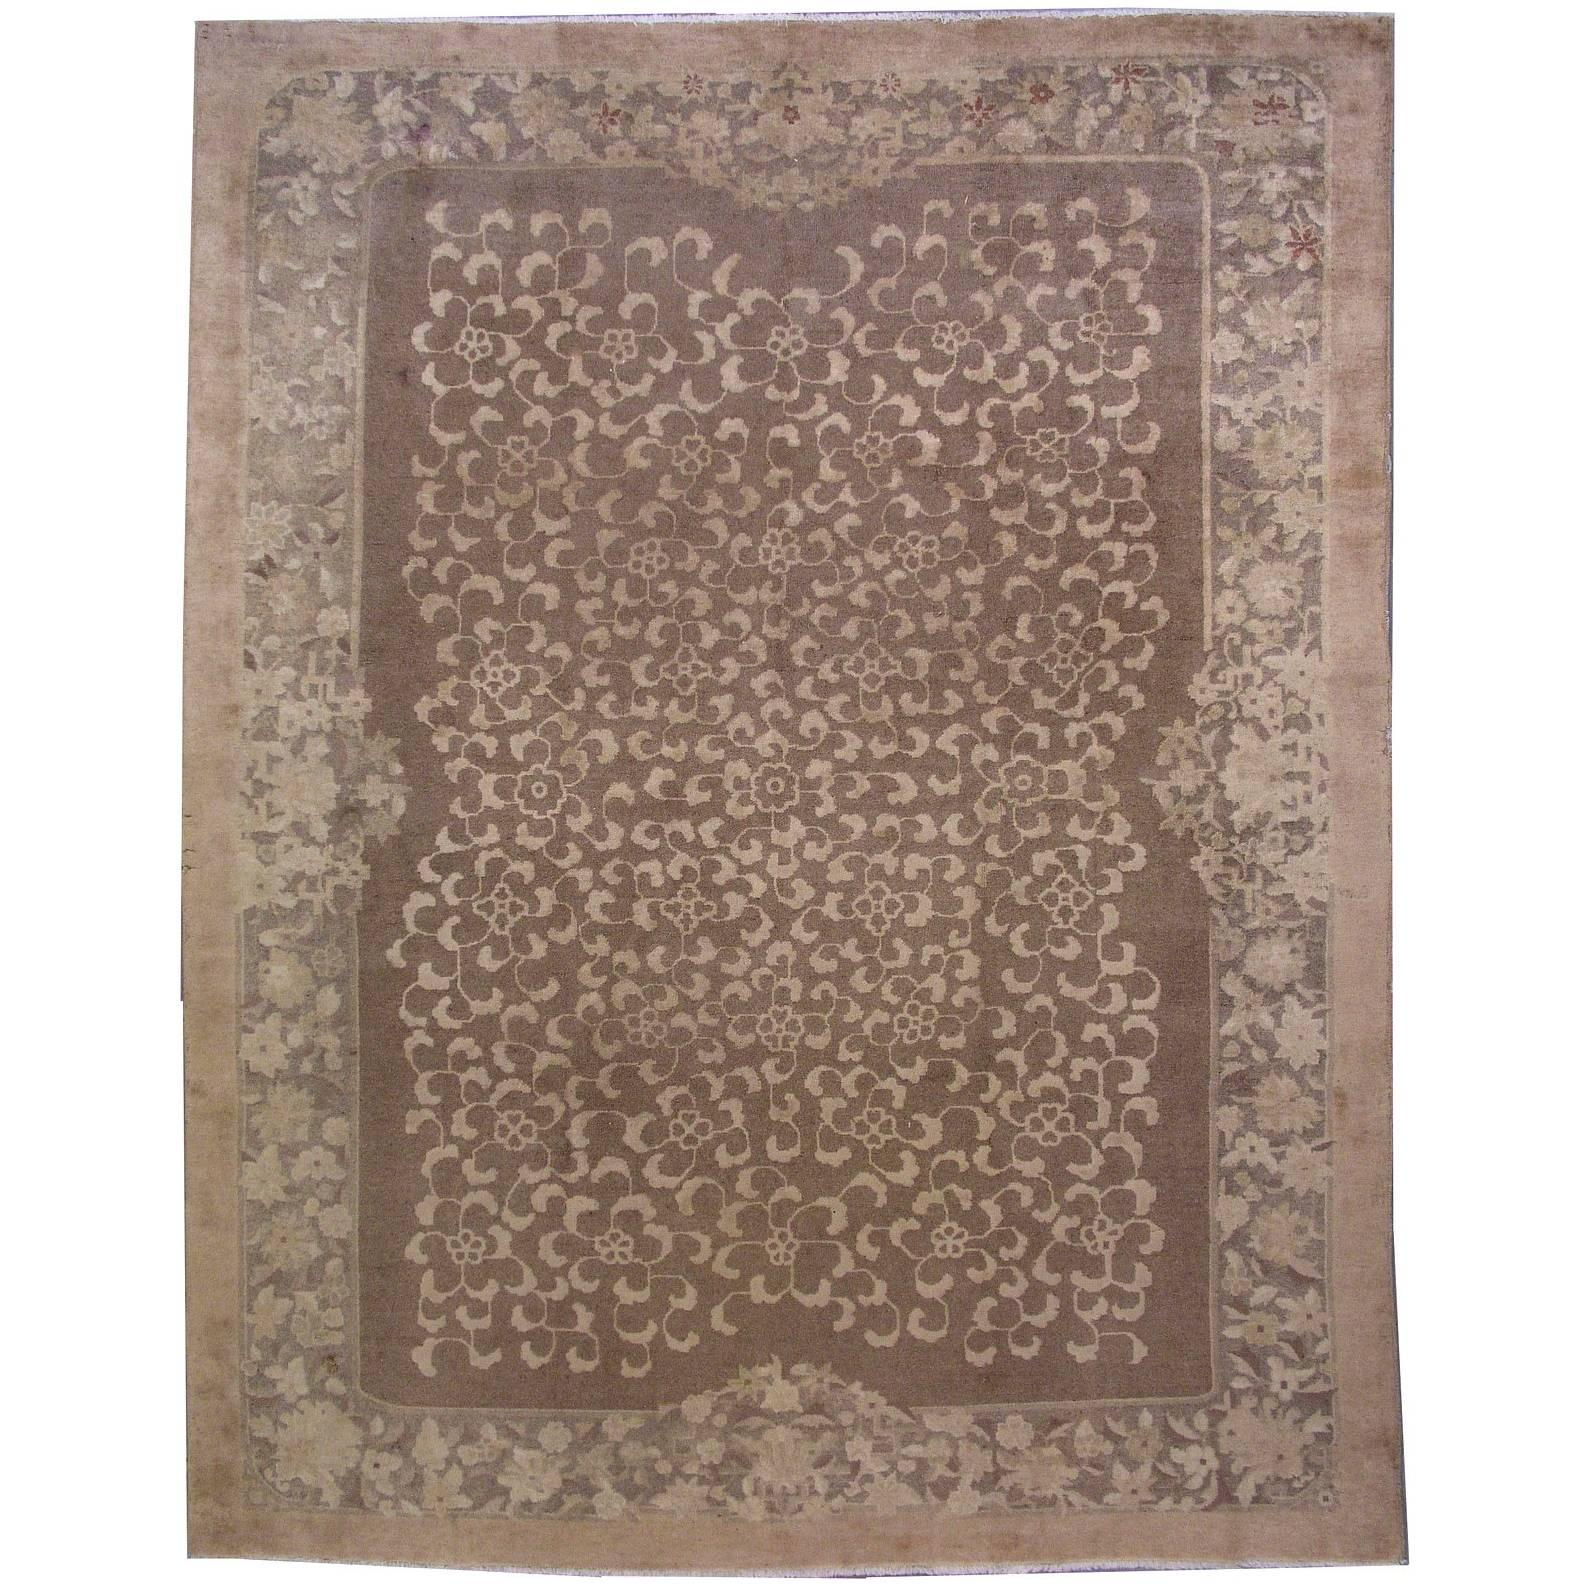 Handmade Antique Chinese Fete Rug, 1910s, 1L03